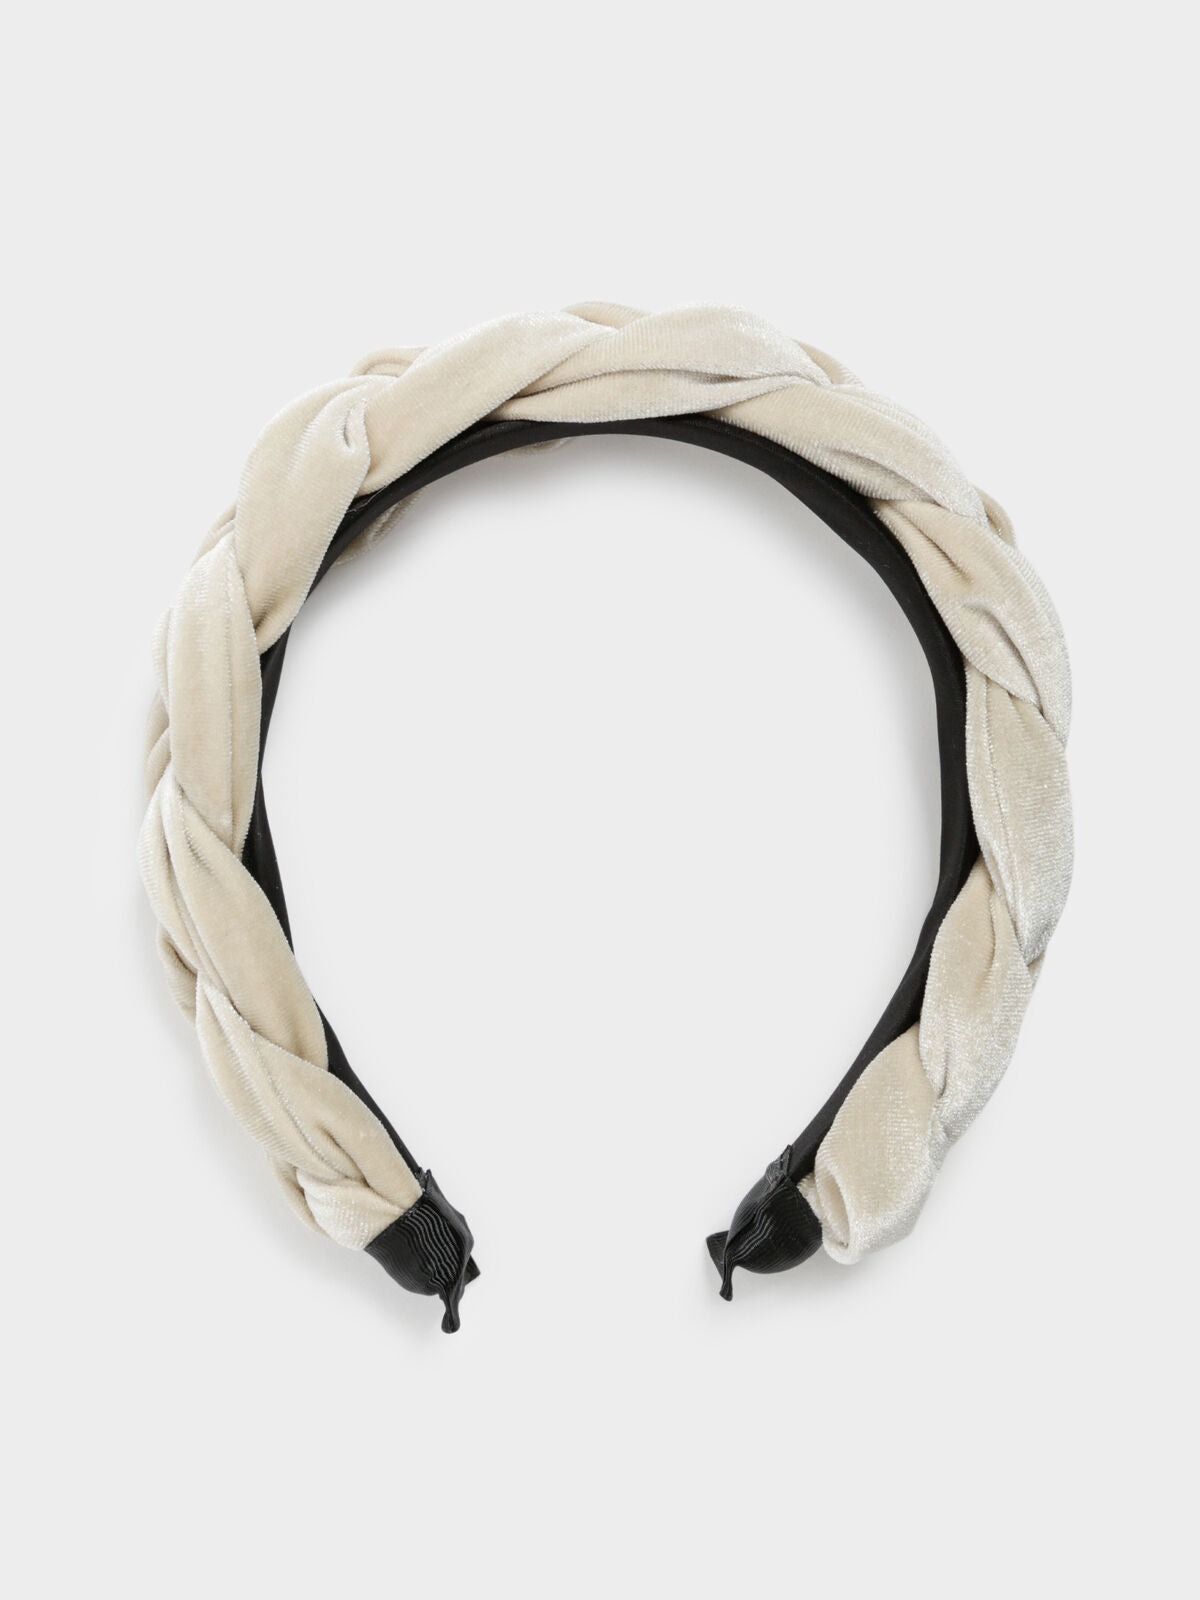 Velvet Plait Headband in Vanilla White